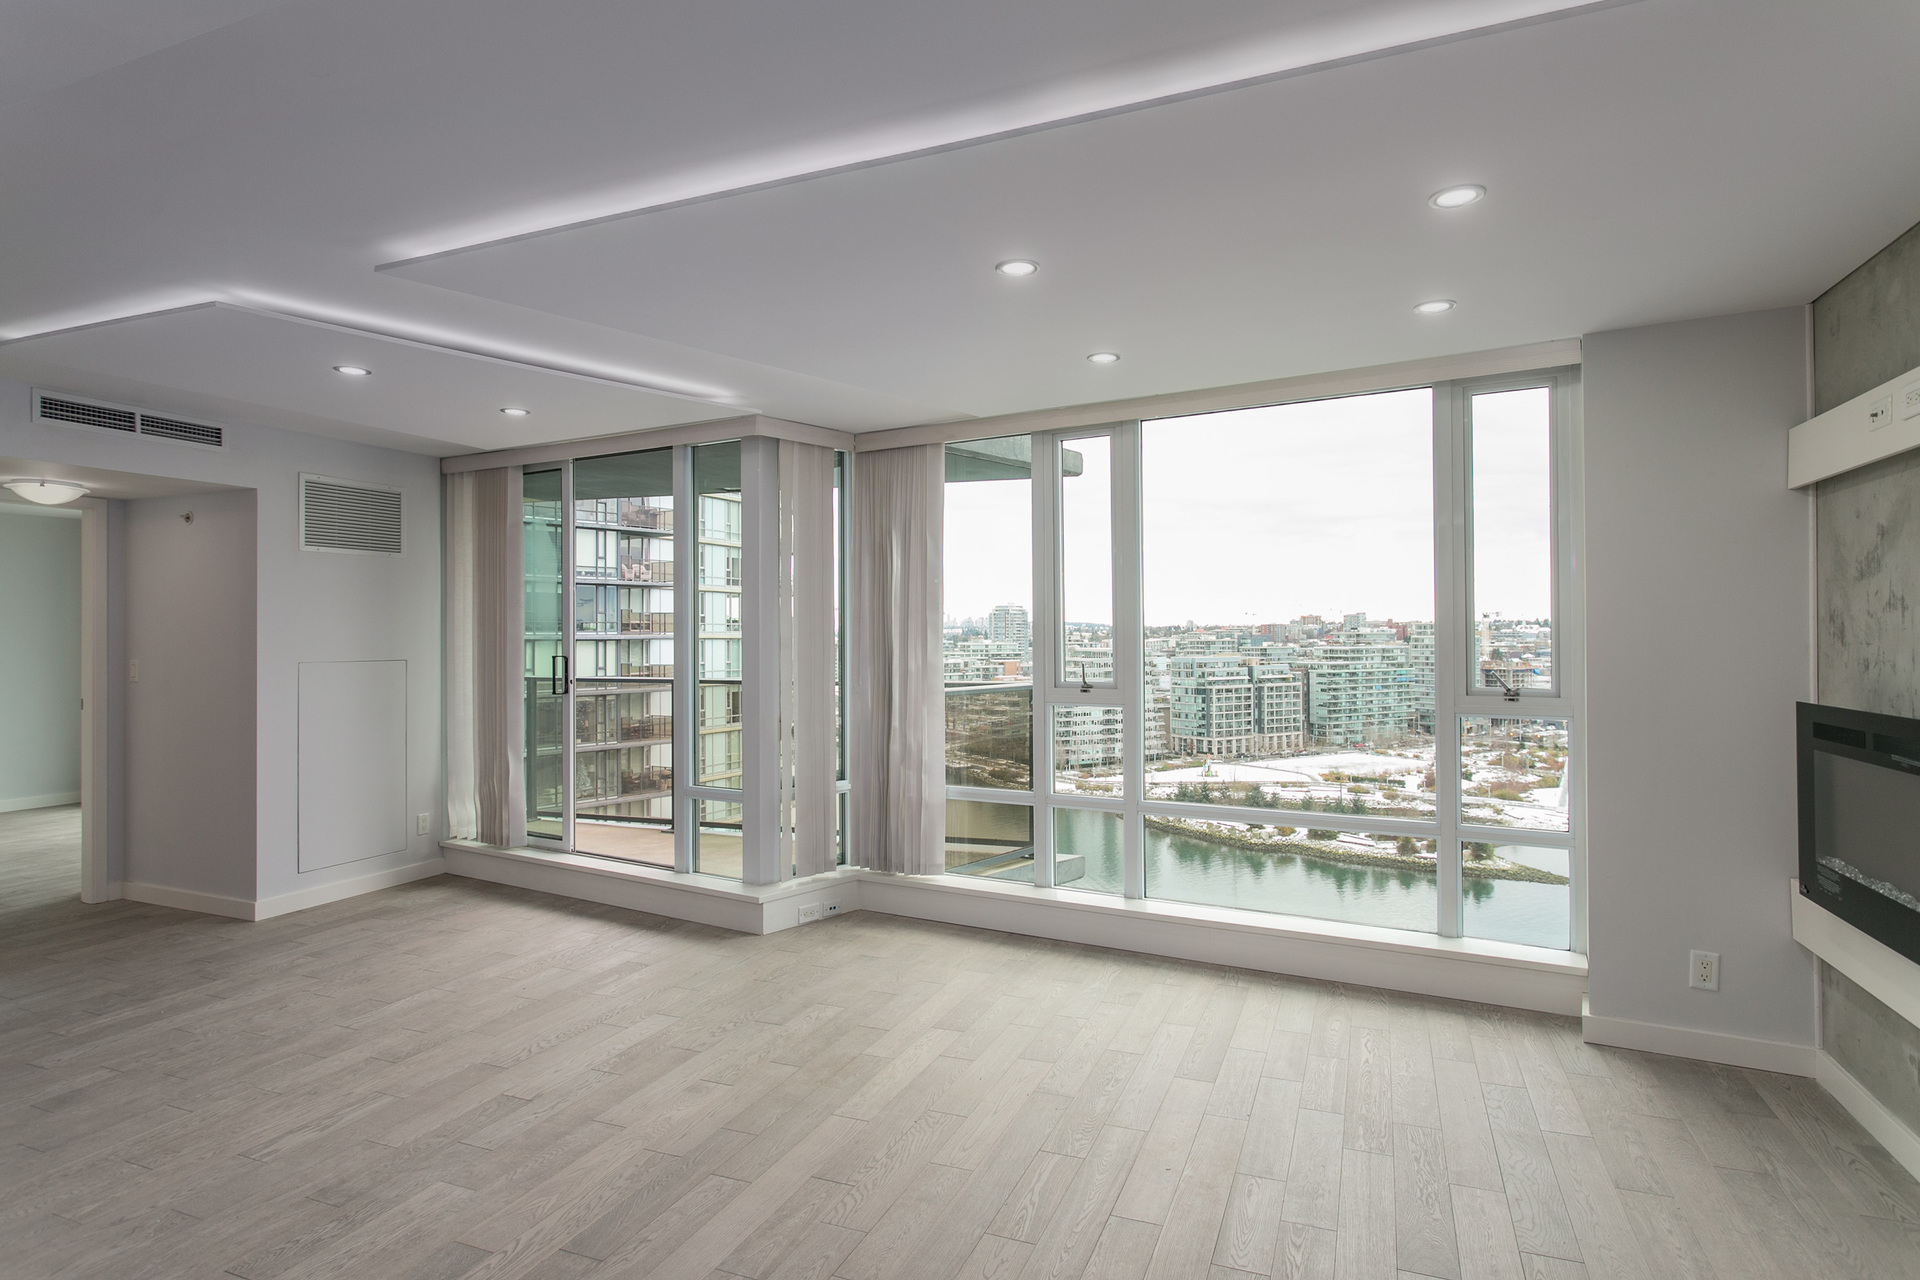 1J6A7997-1 at 2005 - 918 Cooperage Way, Yaletown, Vancouver West